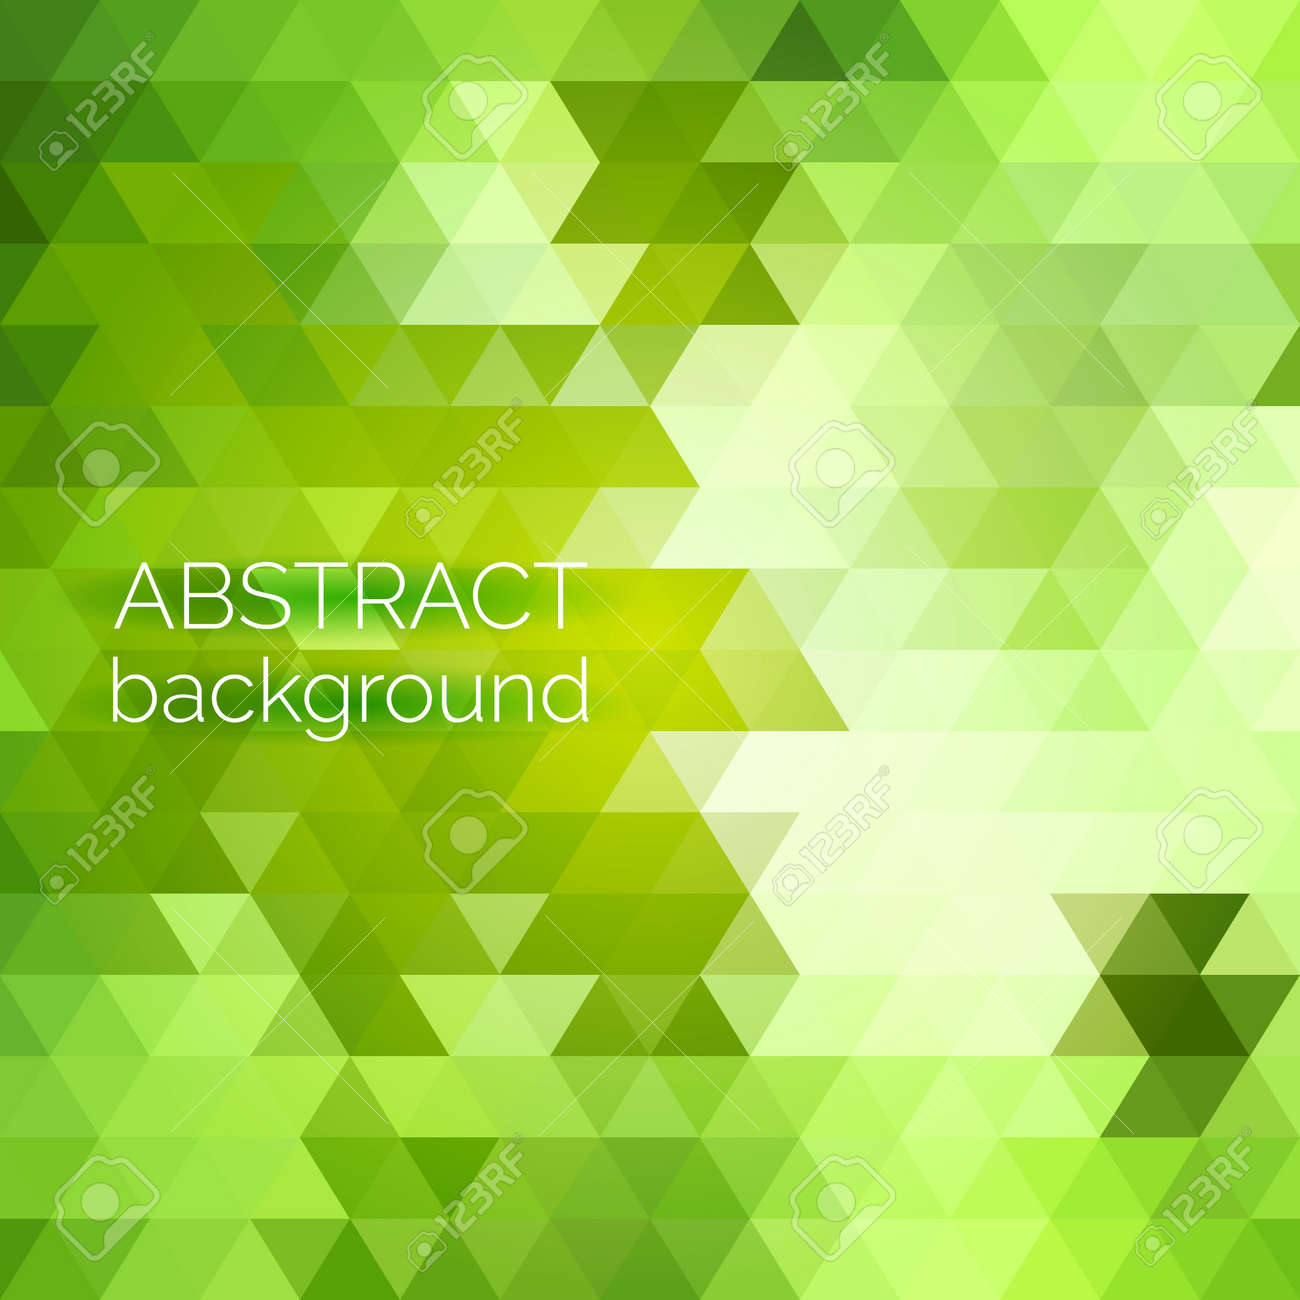 Abstract vector geometric background. Green fresh background. Backdrop design element. Triangle backdrop can be used for web page background, identity style, printing, etc. - 41613377